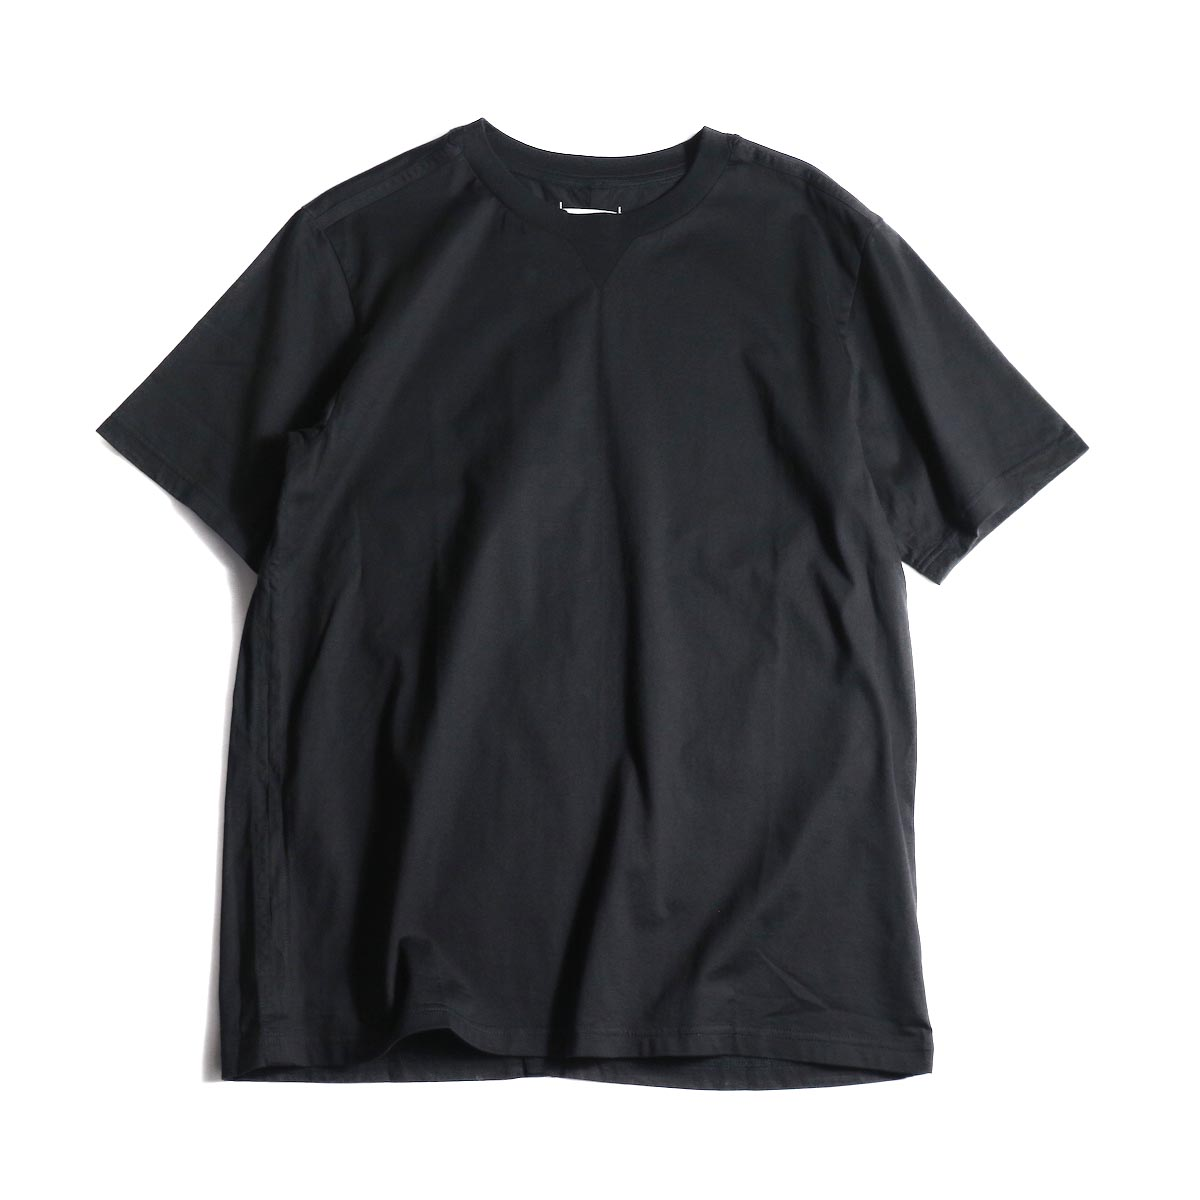 The Soloist / swc.0007a crew neck s/s tee (Black)